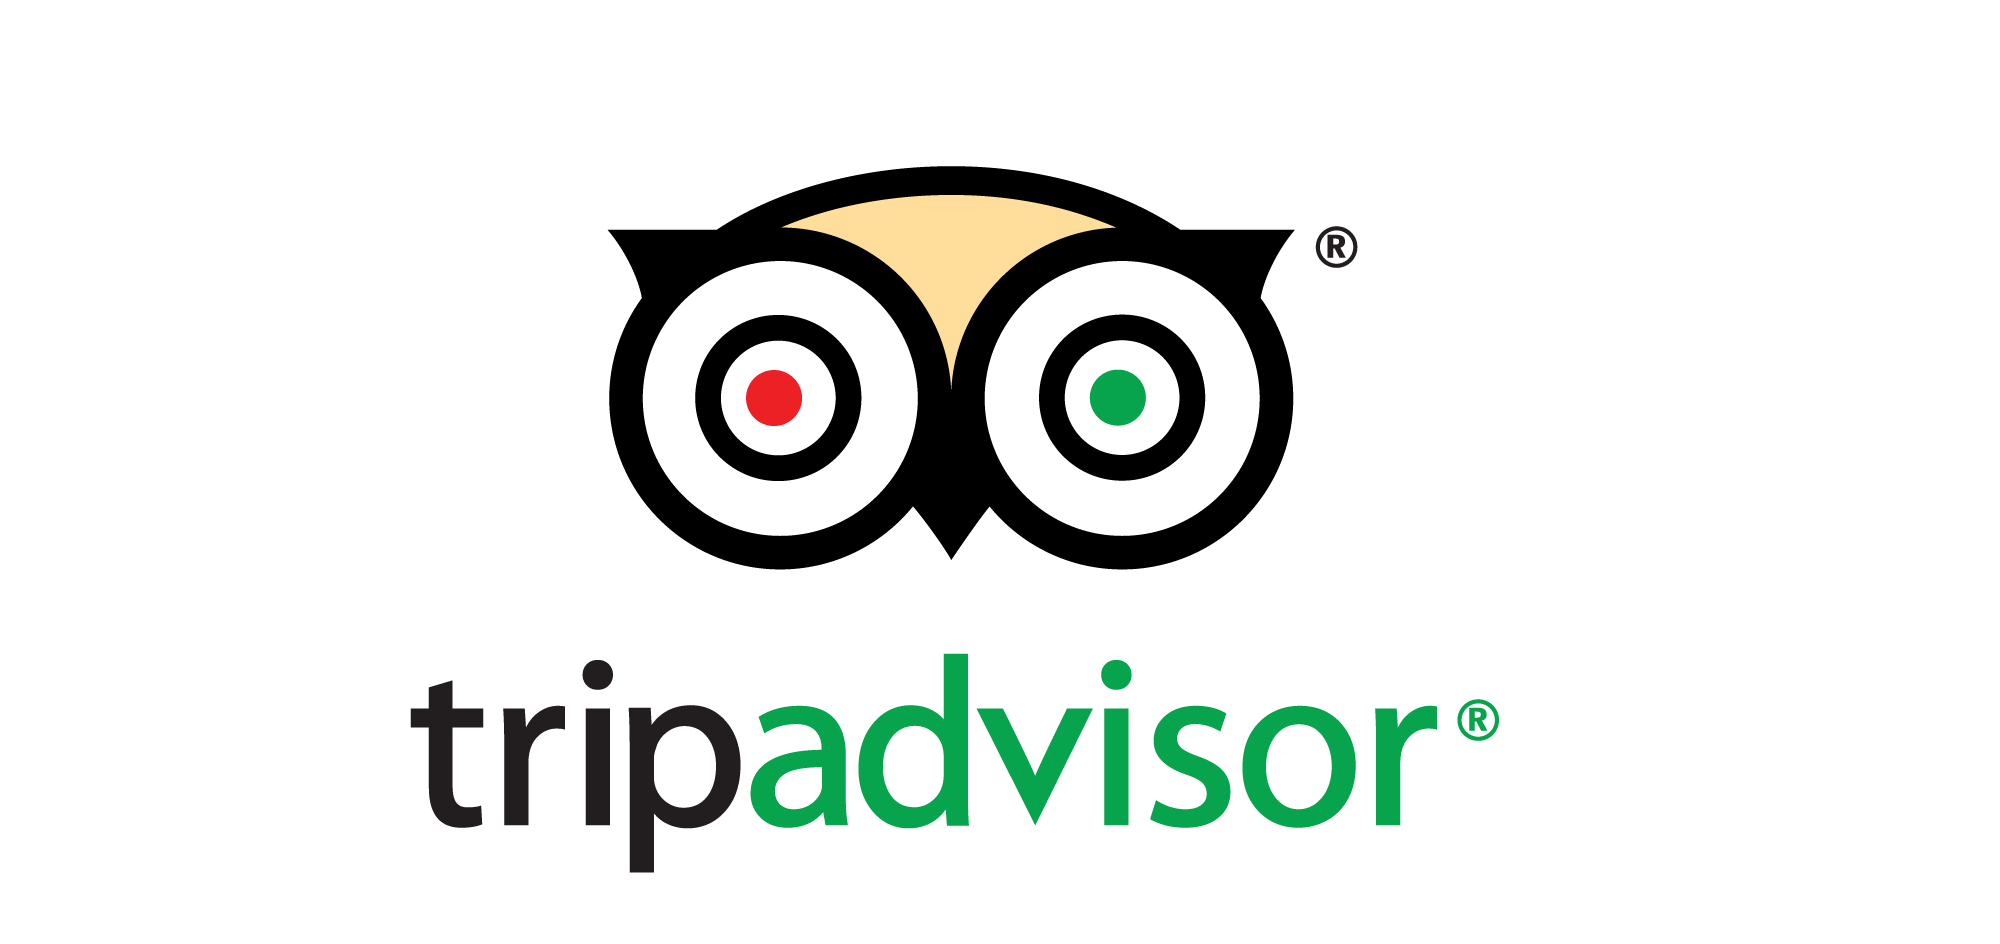 Football Wallpapers Hd For Android Trip Advisor Logo Logo Brands For Free Hd 3d